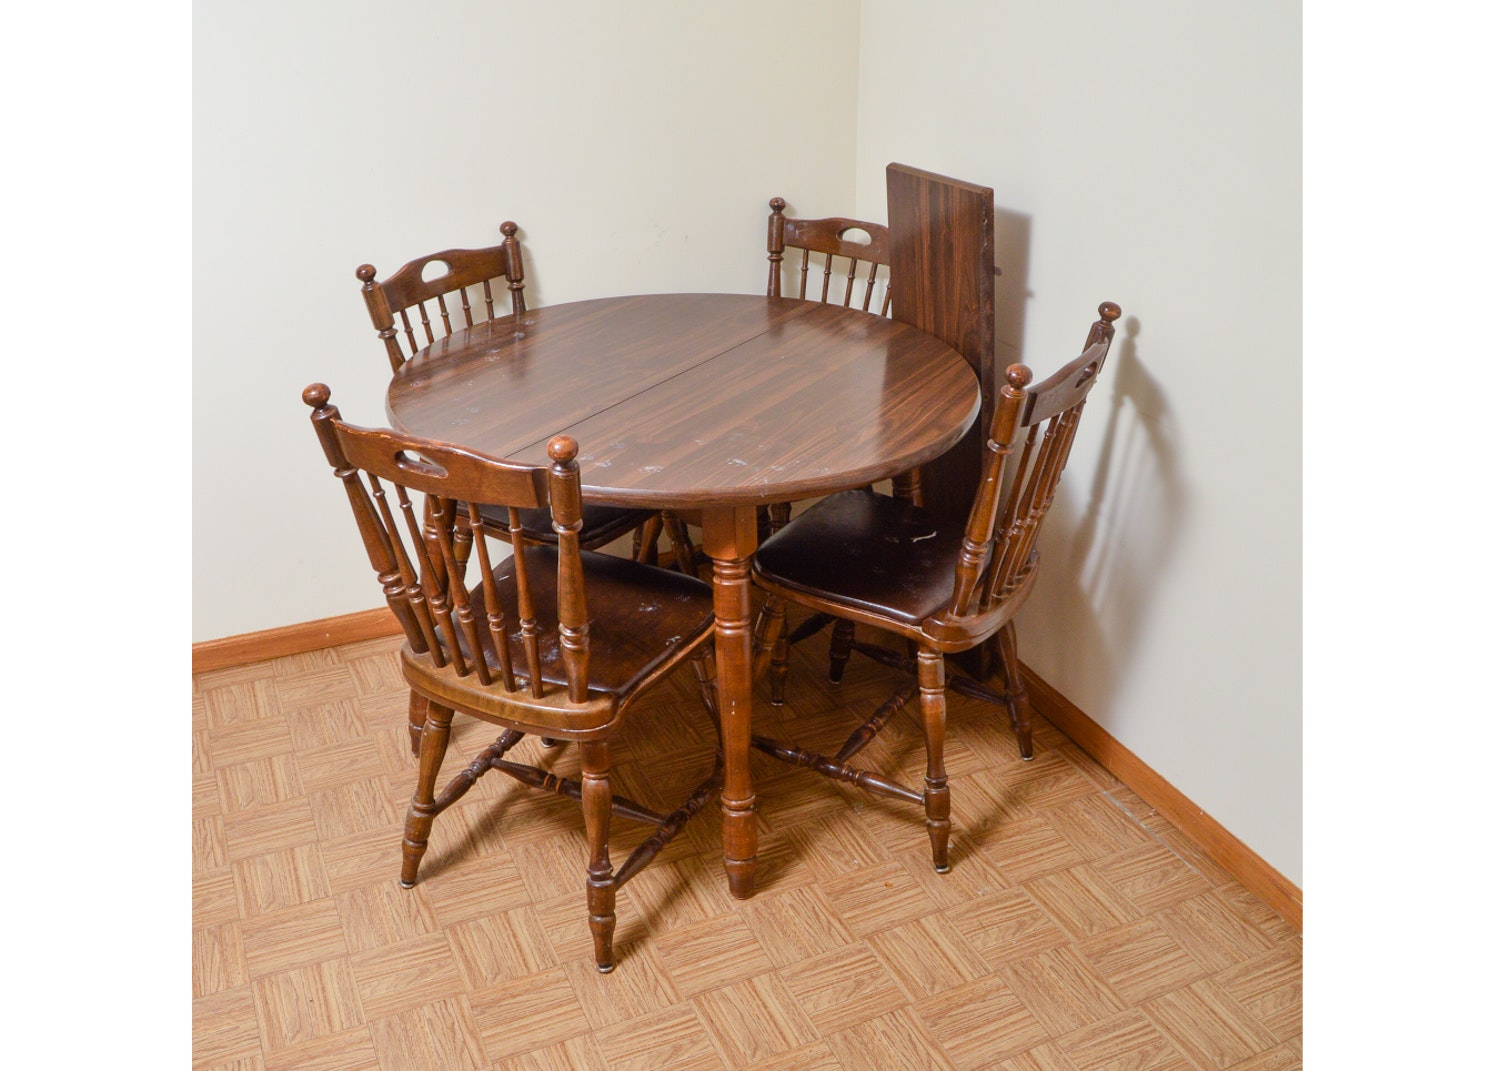 Vintage Colonial Style Dining Table with Chairs by Richardson Brothers